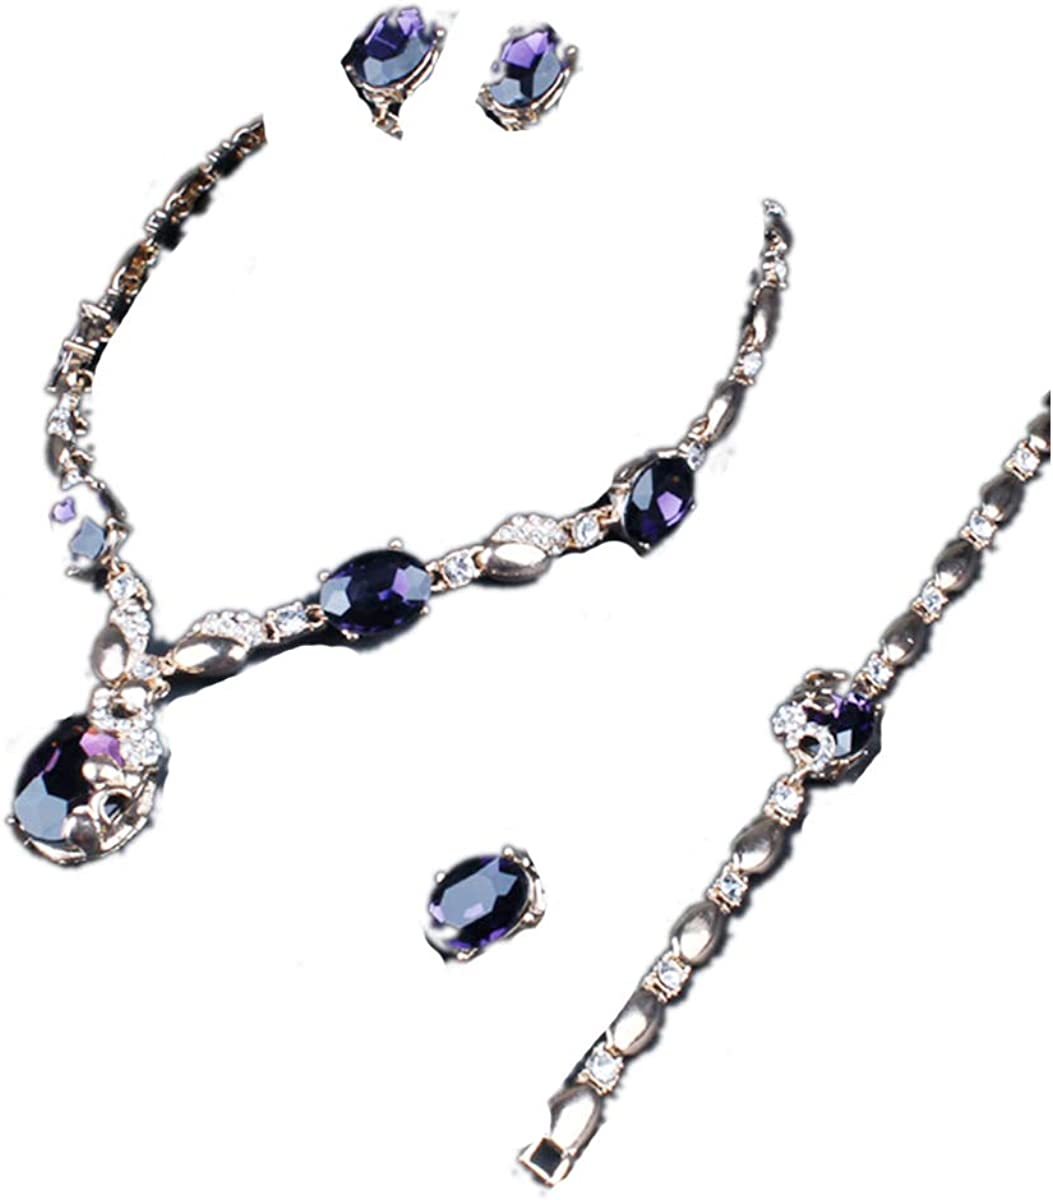 ENUUNO Bridal prom costume jewelry for women purple and Green Crystal Choker Pendant Bib Statement Charm Necklace and Earrings Ring Bracelets wedding jewelry sets for brides